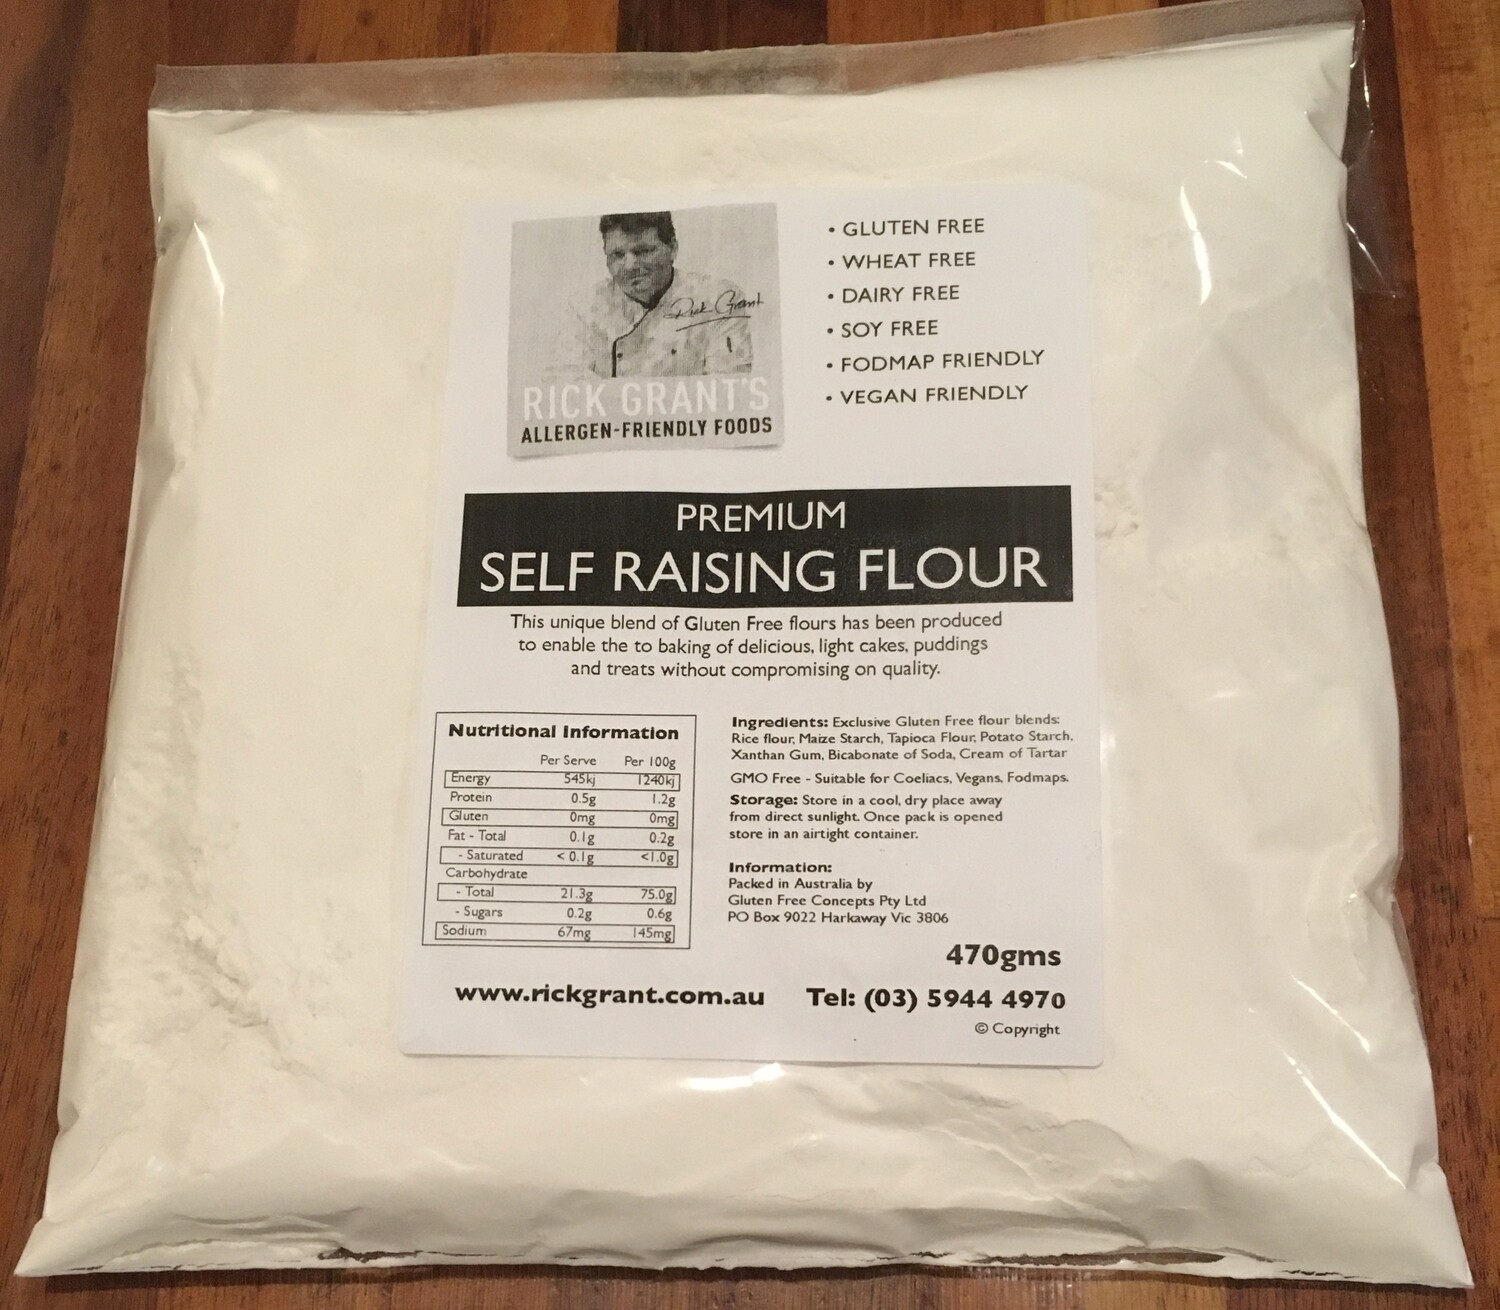 NEW TO THE STORE! Premium Gluten Free Self Raising Flour can be used for cakes, slices & muffins!